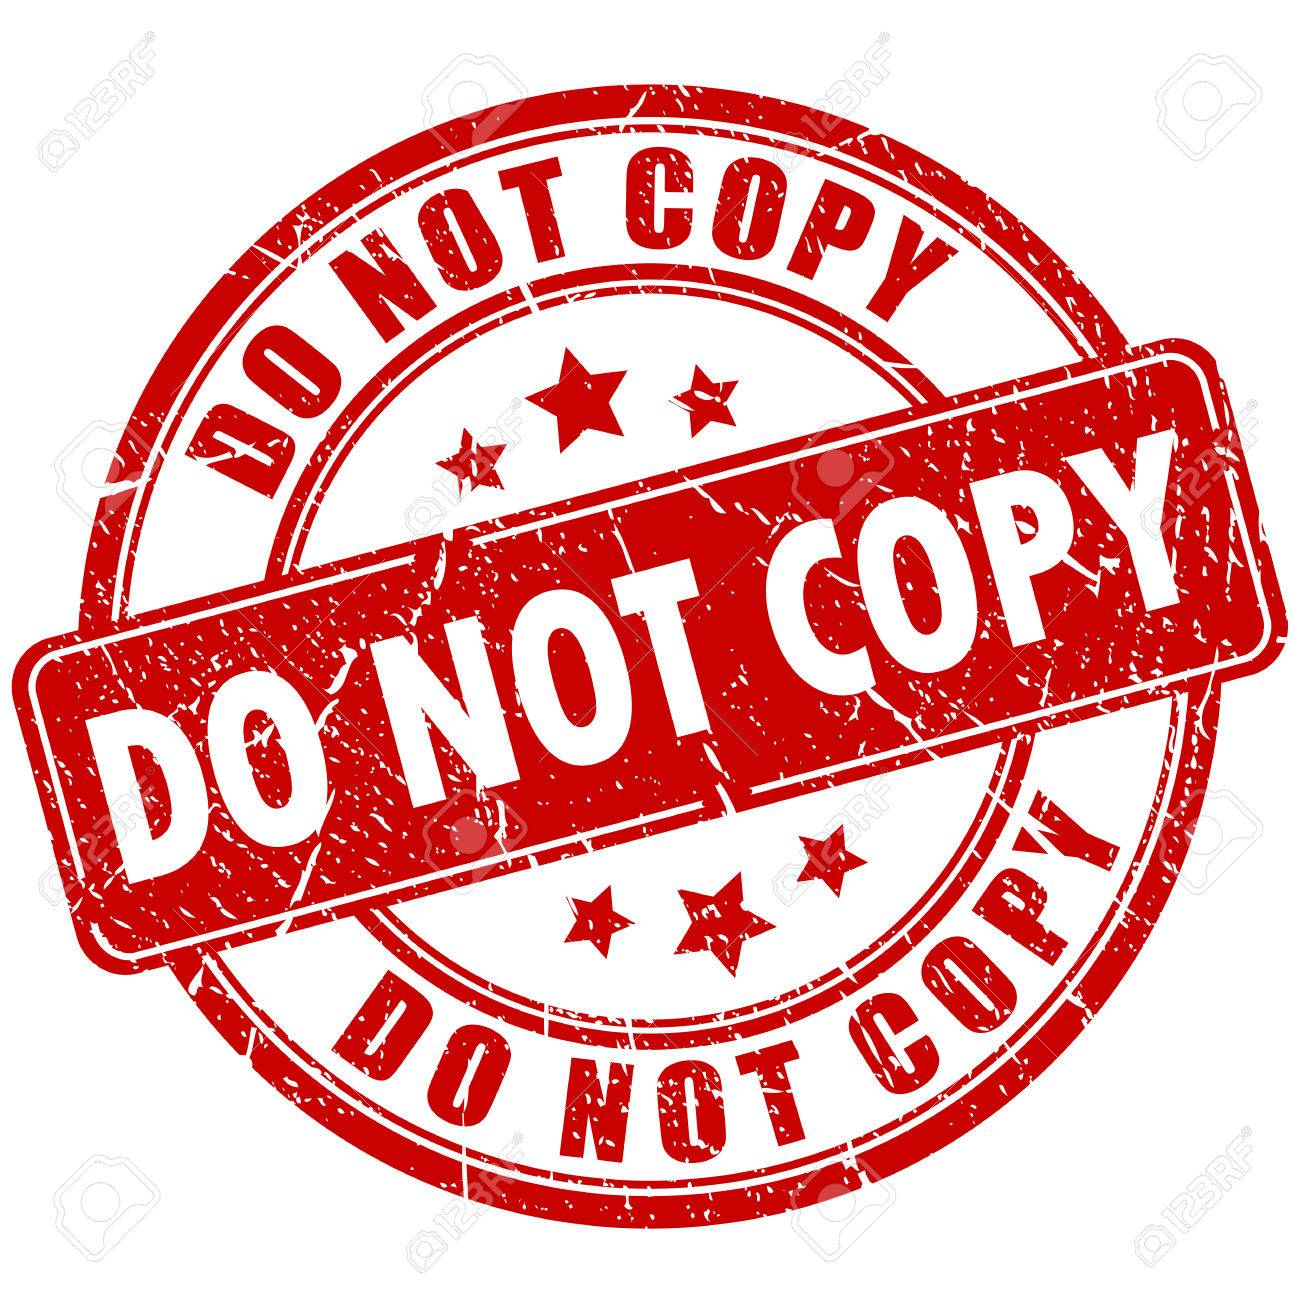 Caution Cliparts Copy And Stamp Do Not Free Royalty Rubber Image 63065180 Stock Illustration Vectors